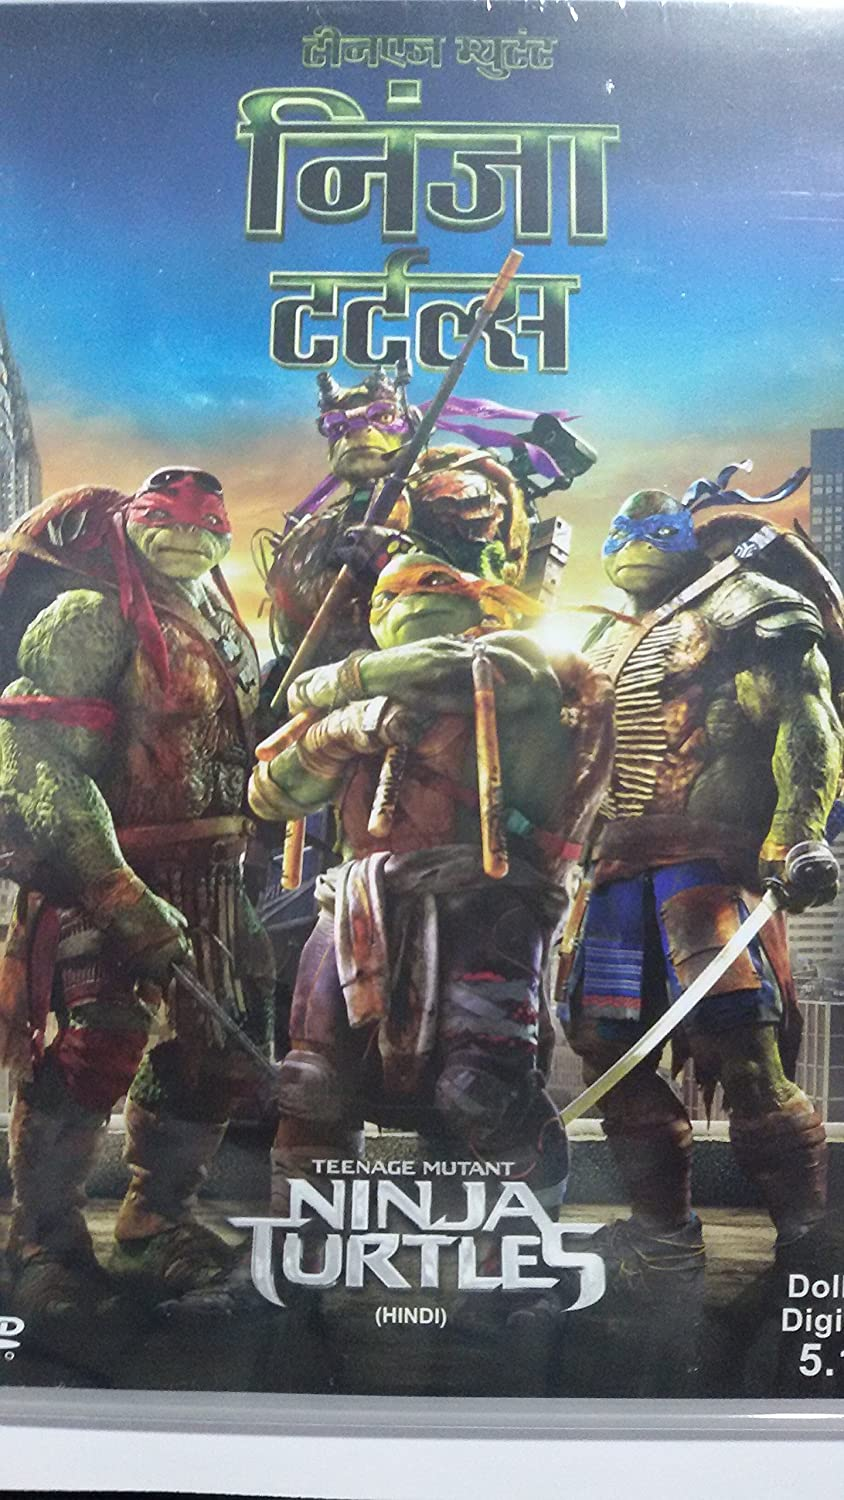 Amazon.com: Teenage Mutant Ninja Turtles (Hindi): Movies & TV